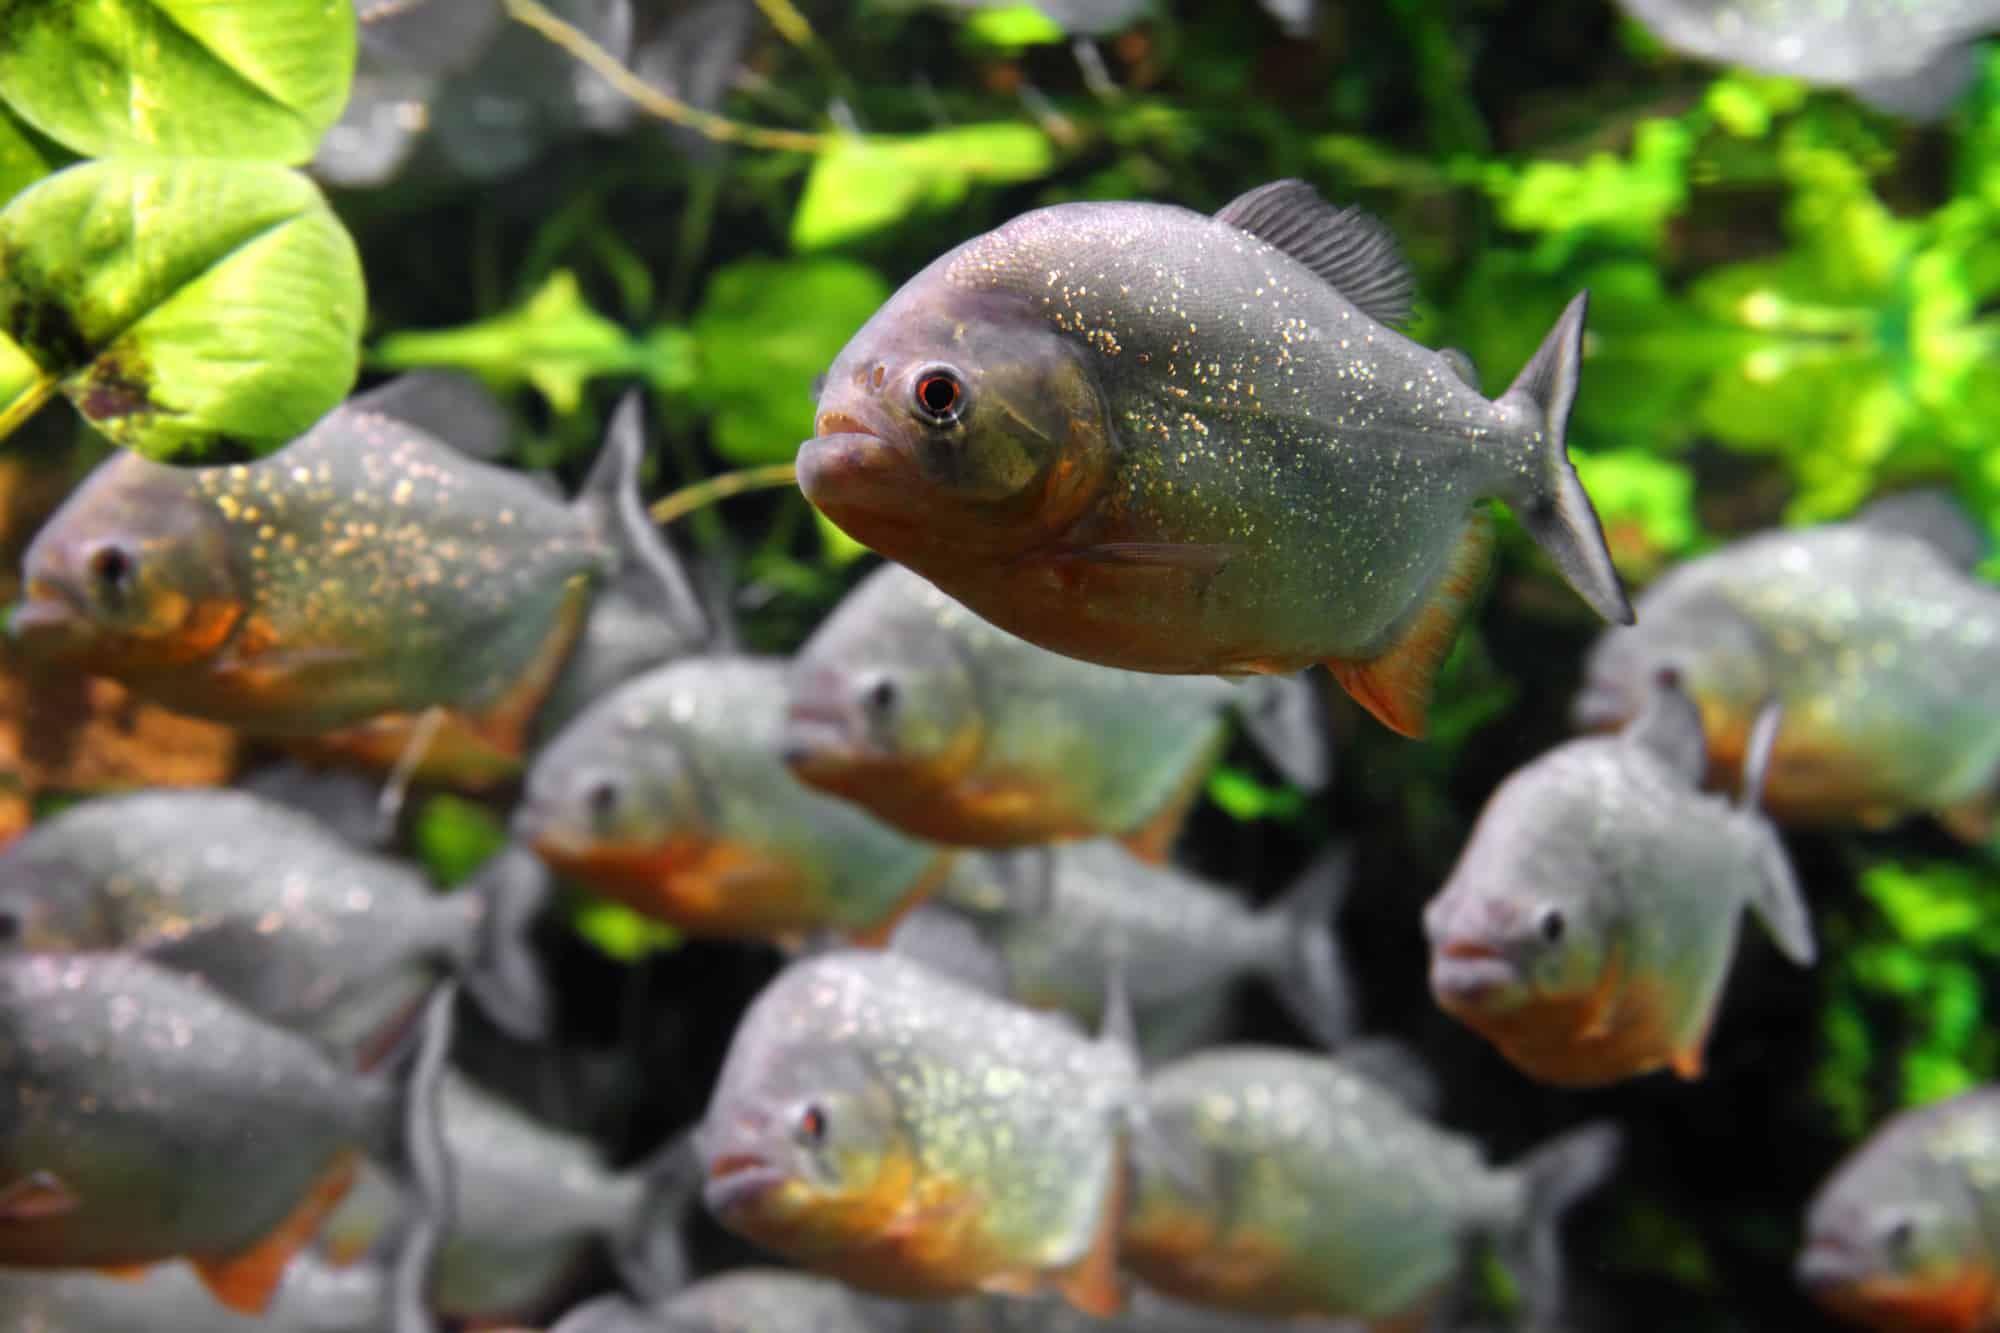 How Much Does it Cost to Buy a Piranha?